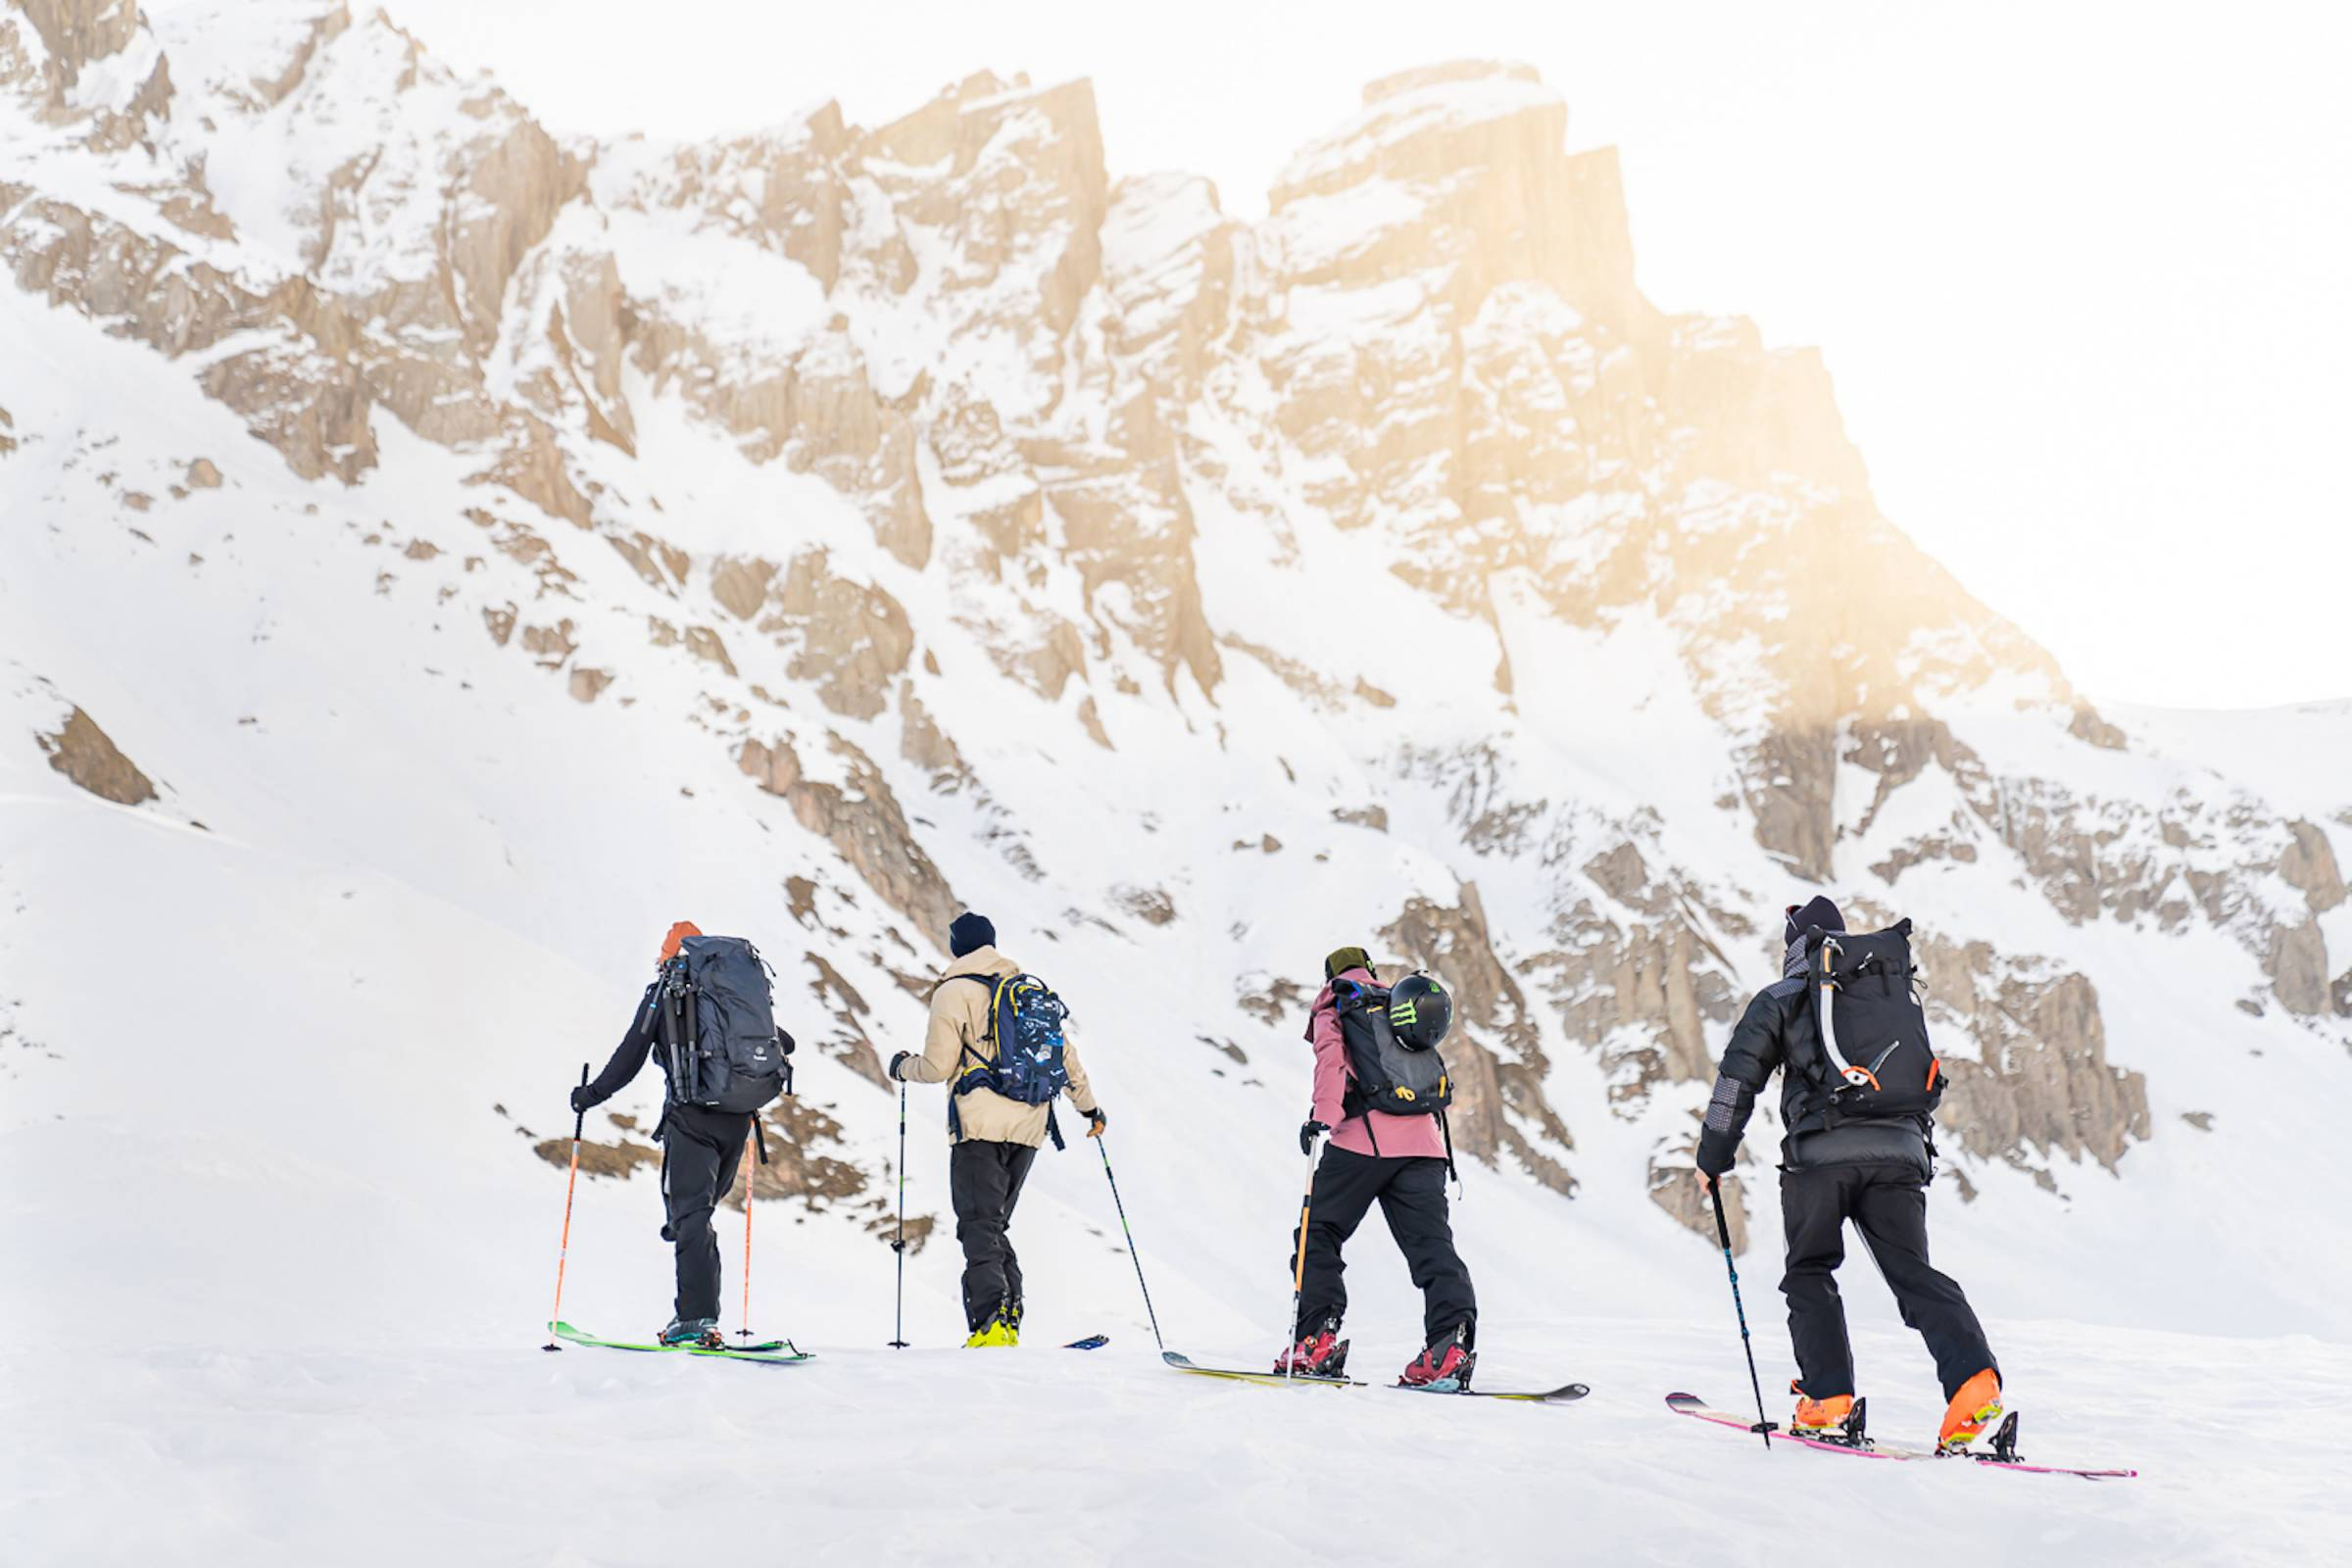 4 skiers traversing across a snowy landscape in the Alps of France